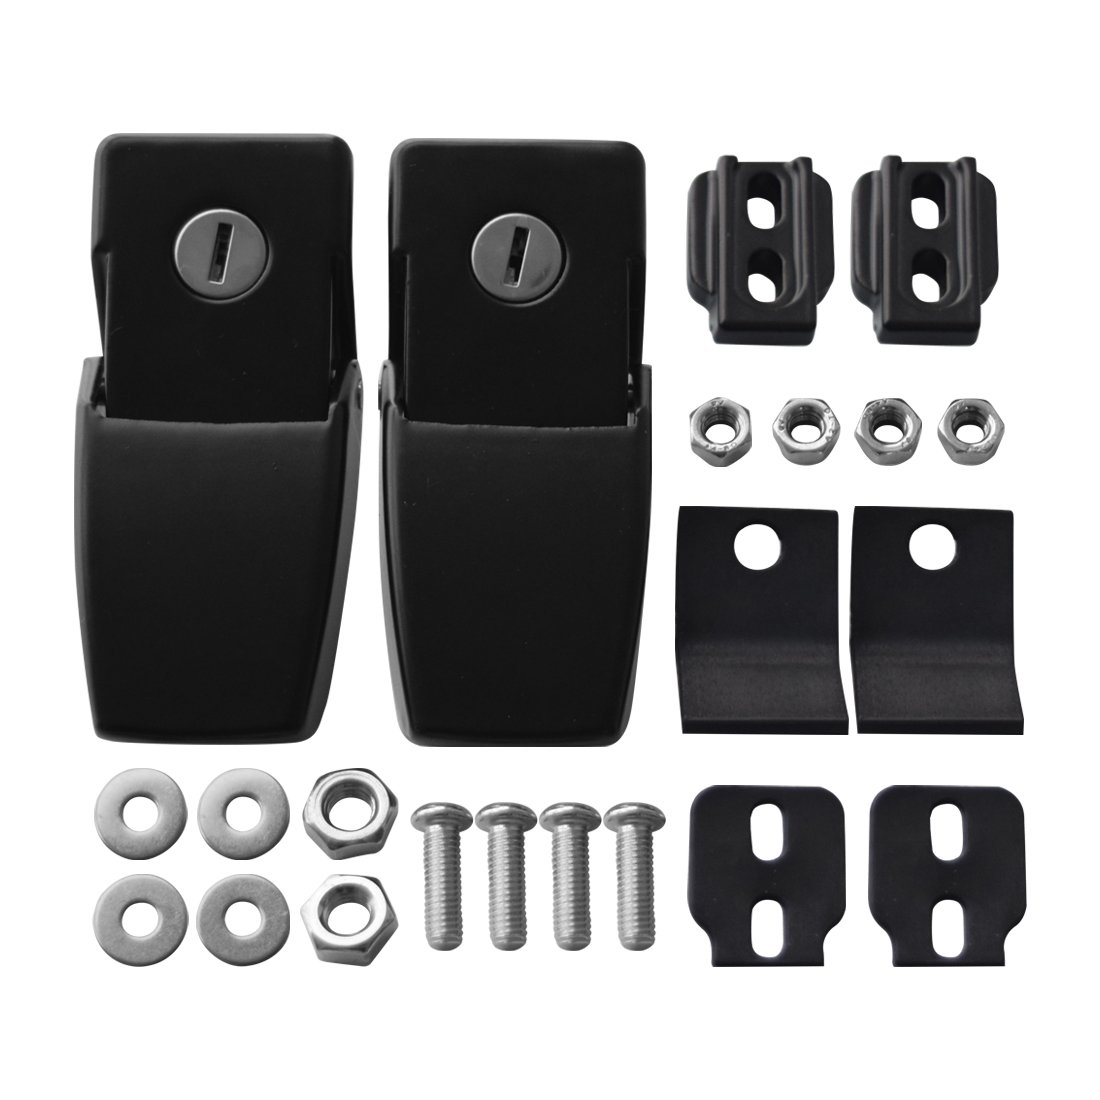 IPARTS Anti-Thief Security Hood lock kit for Jeep Wrangler 2007-2017 Rubicon Sahara Sport JK JKU a pair Locking Hood Look Catch Latches Kit